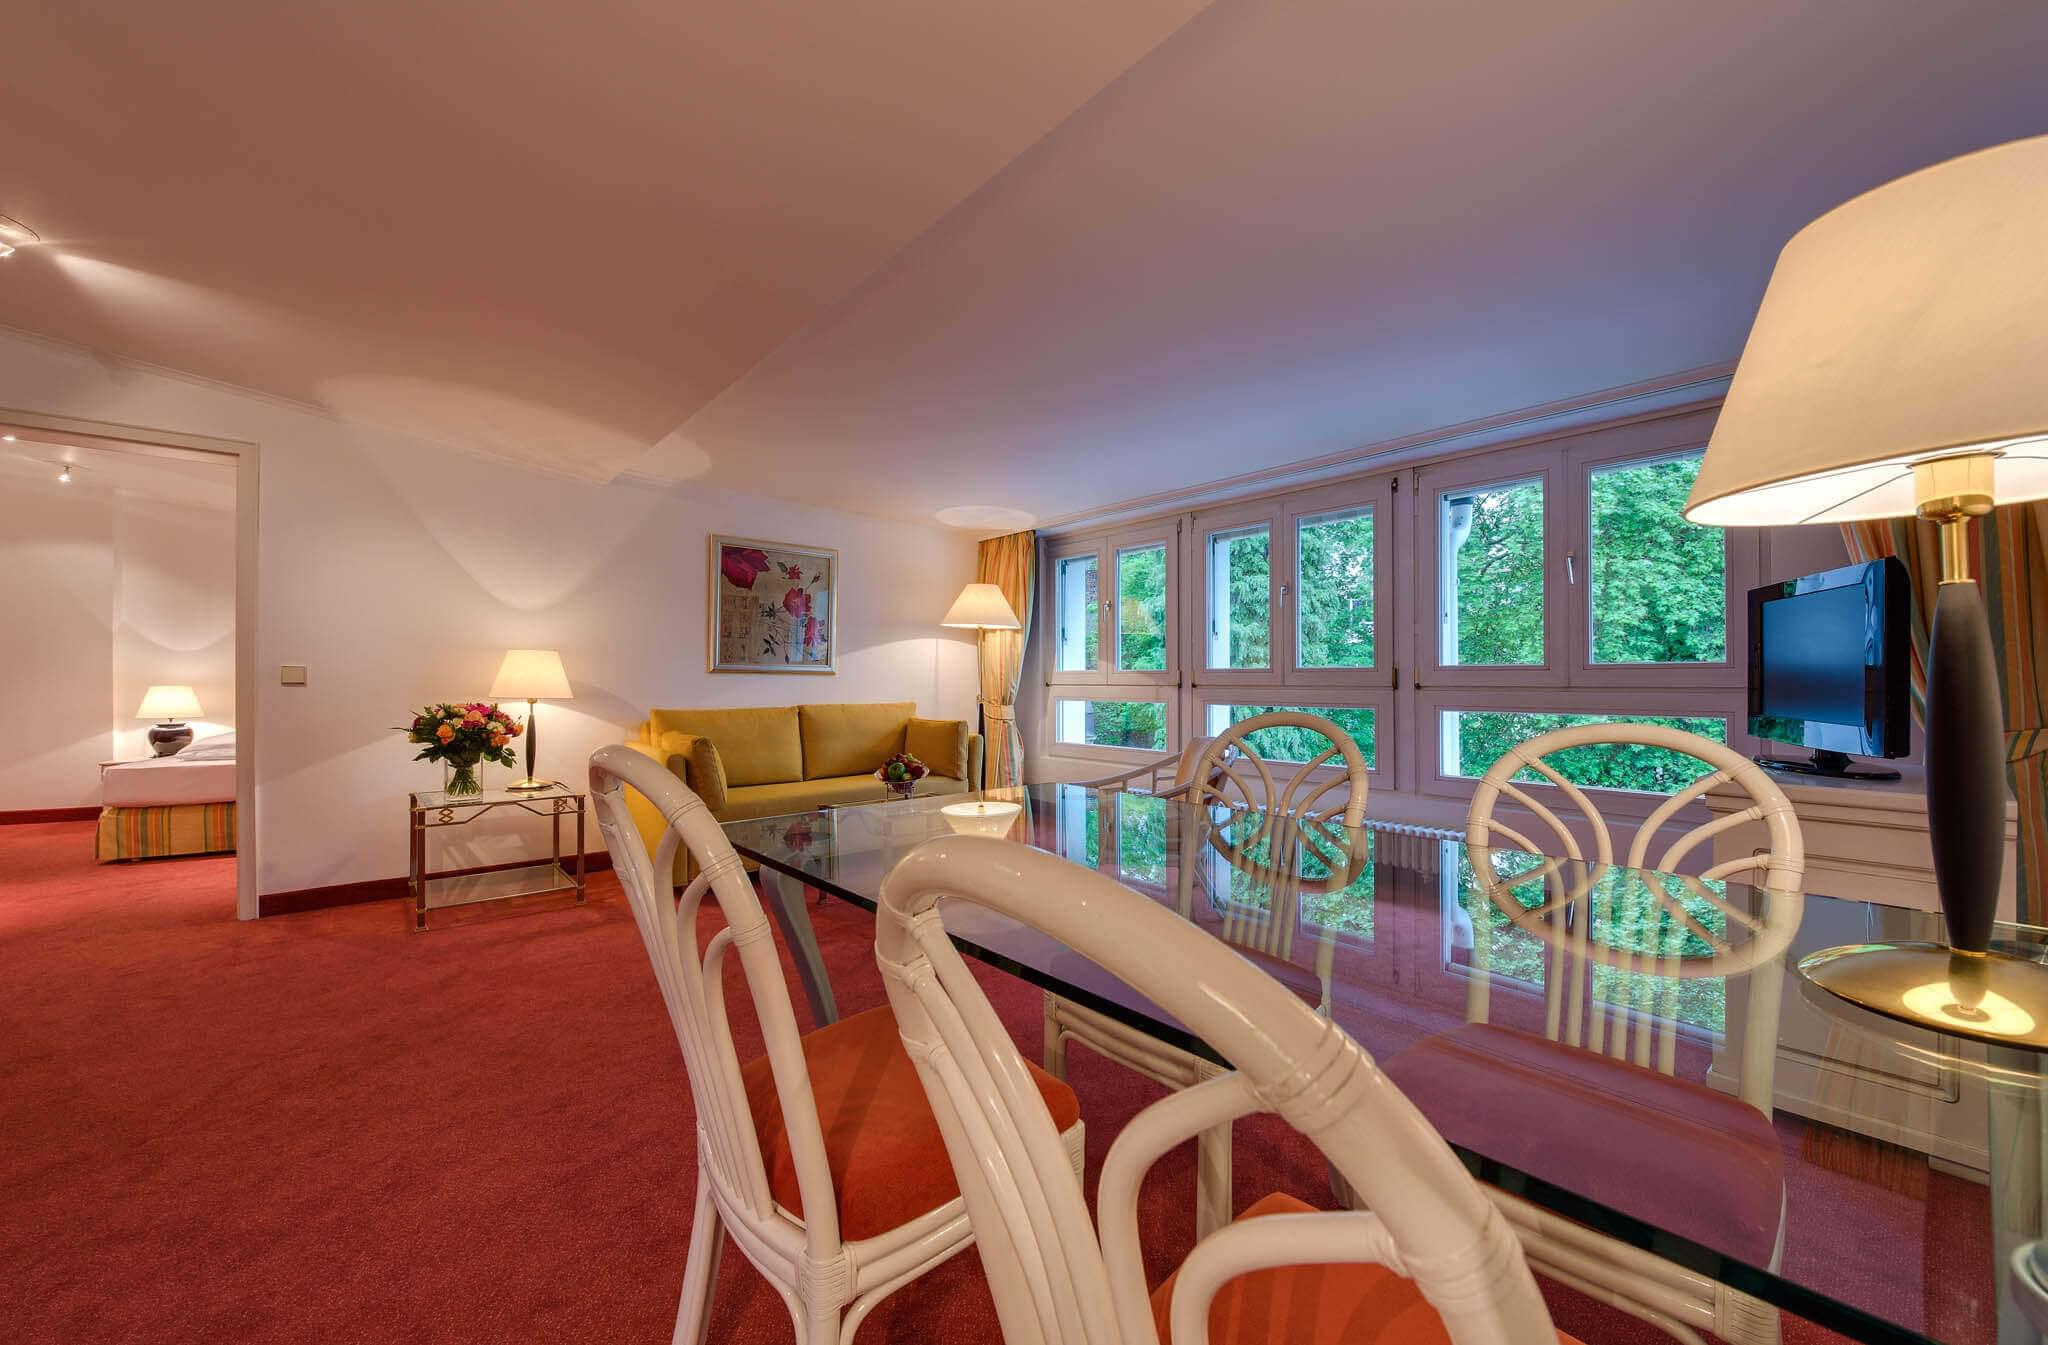 , Family Apartment, Hotel am Sophienpark